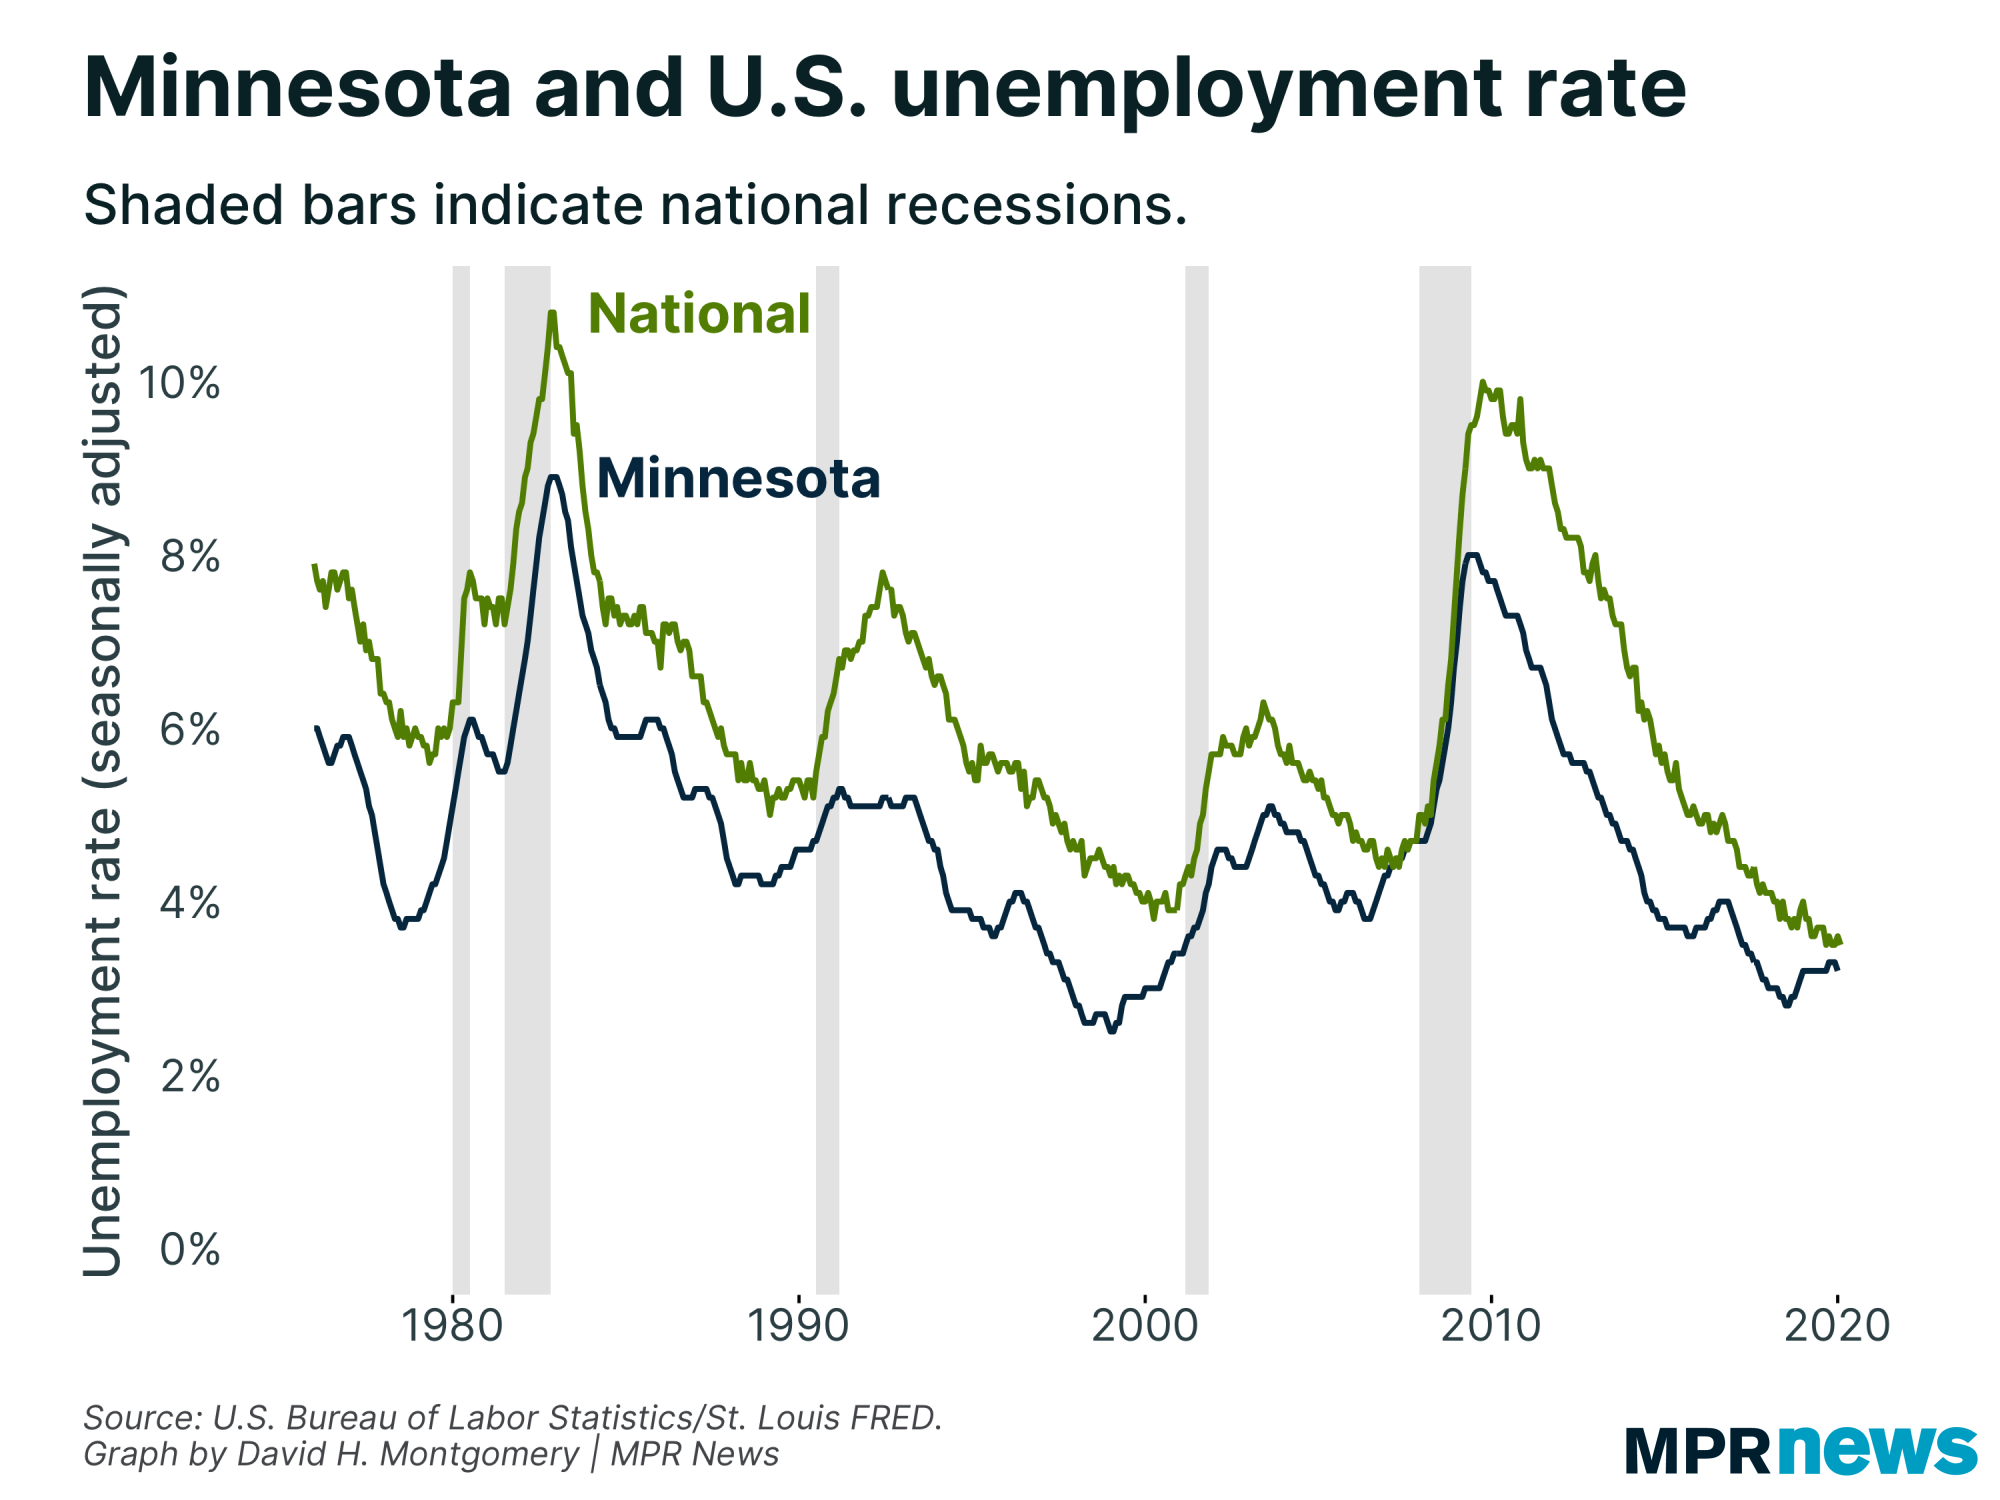 Minnesota and the U.S. unemployment rates